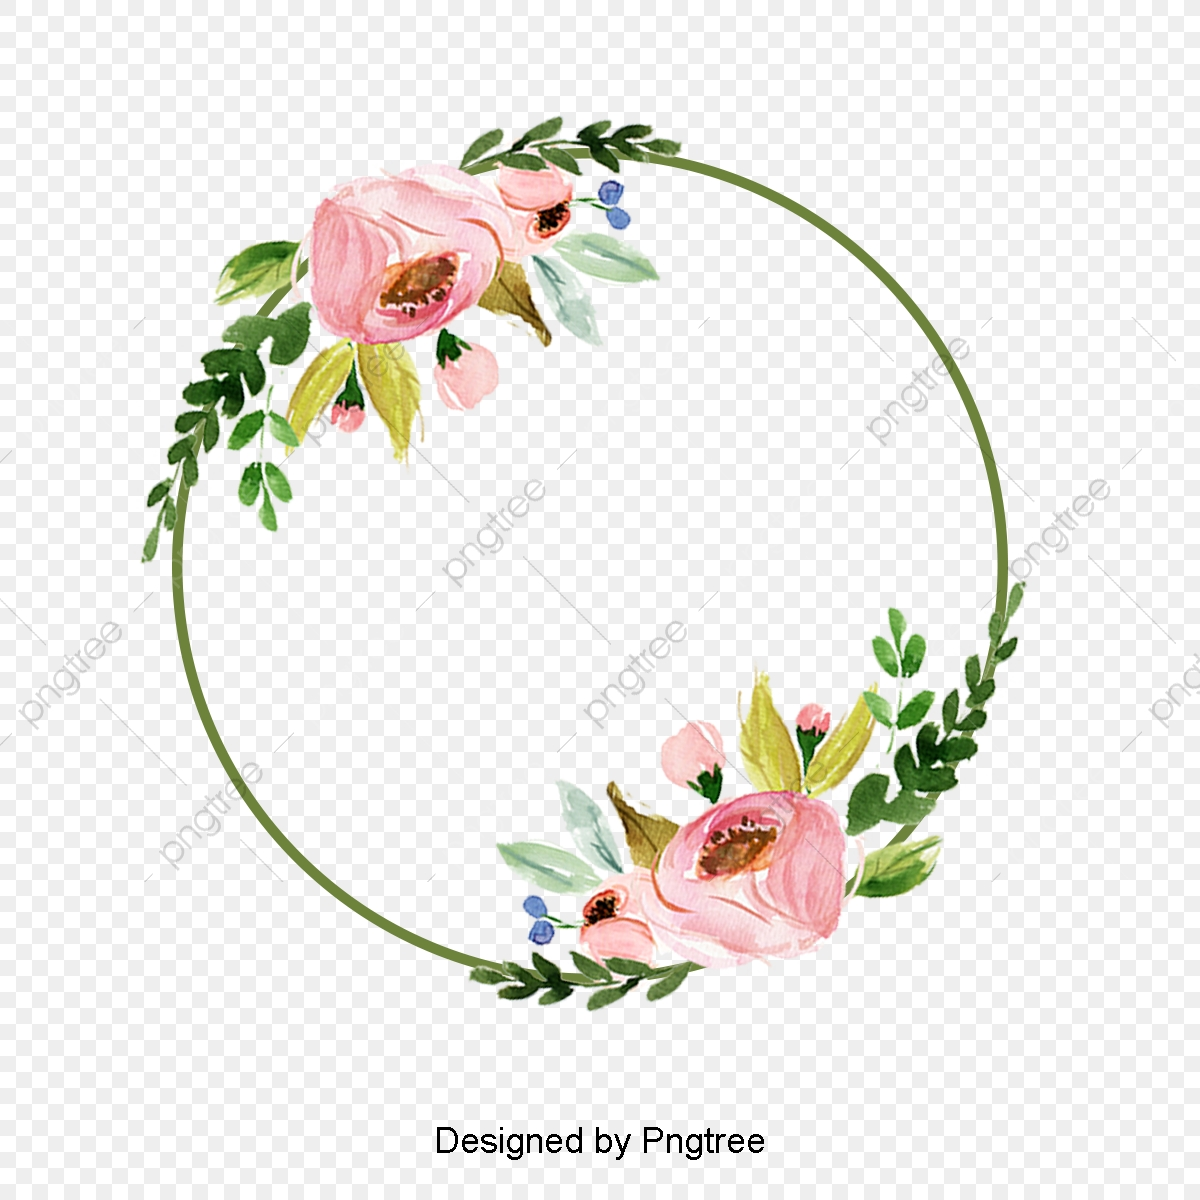 Beautiful And Colorful Flower Border Elements Design Ring Lace